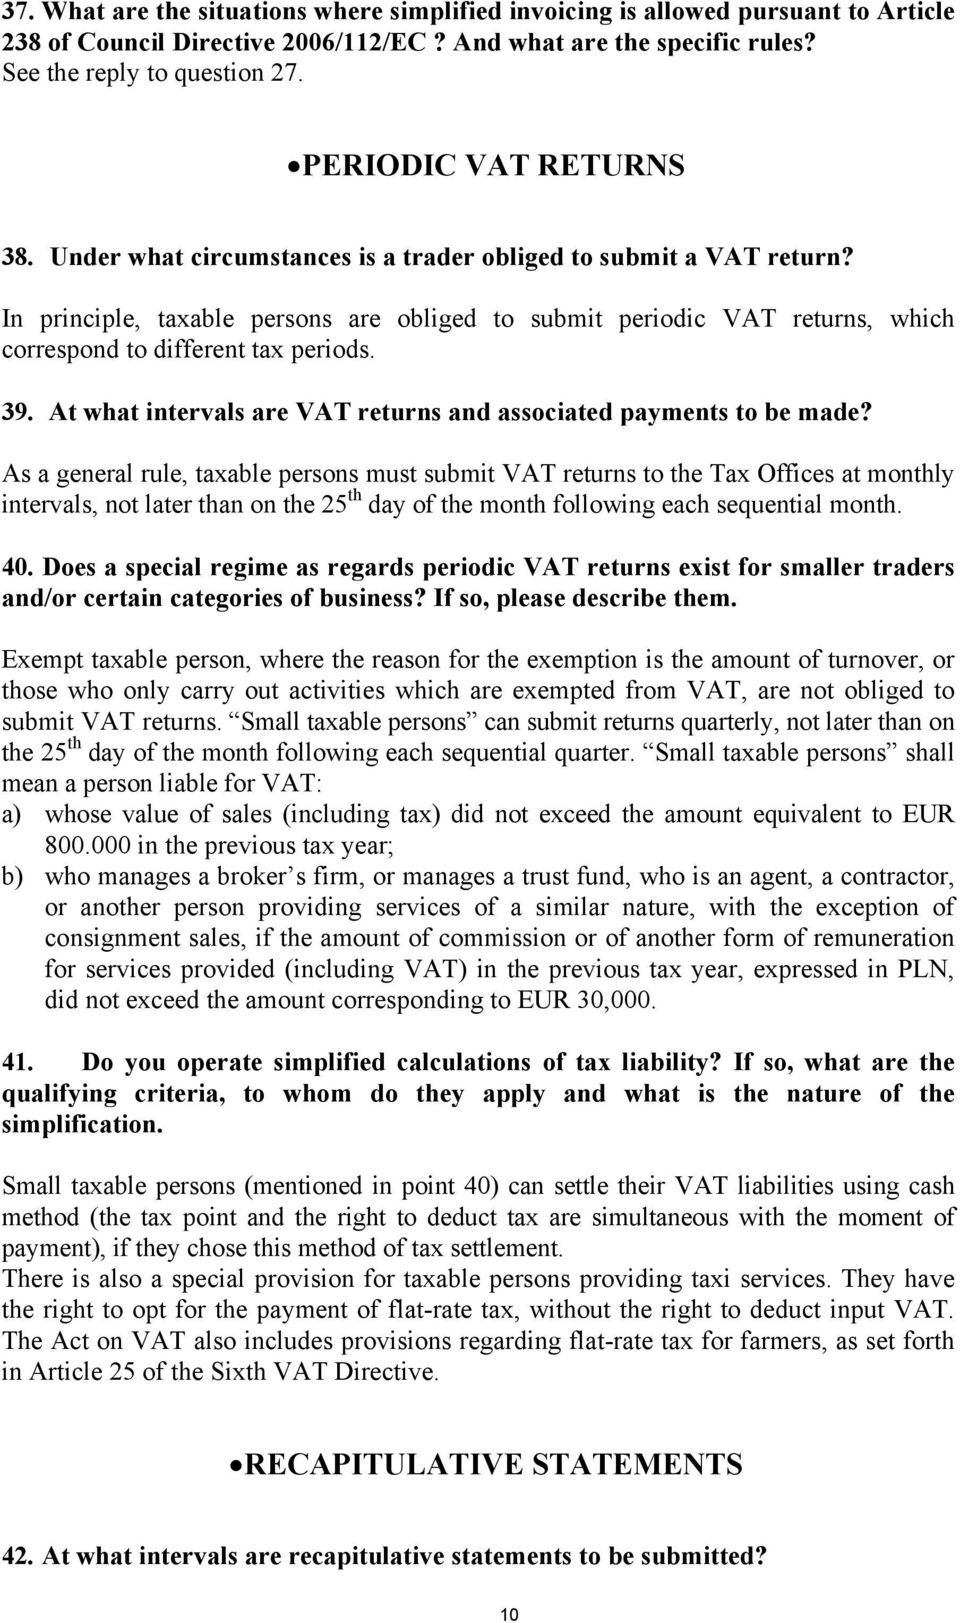 In principle, taxable persons are obliged to submit periodic VAT returns, which correspond to different tax periods. 39. At what intervals are VAT returns and associated payments to be made?